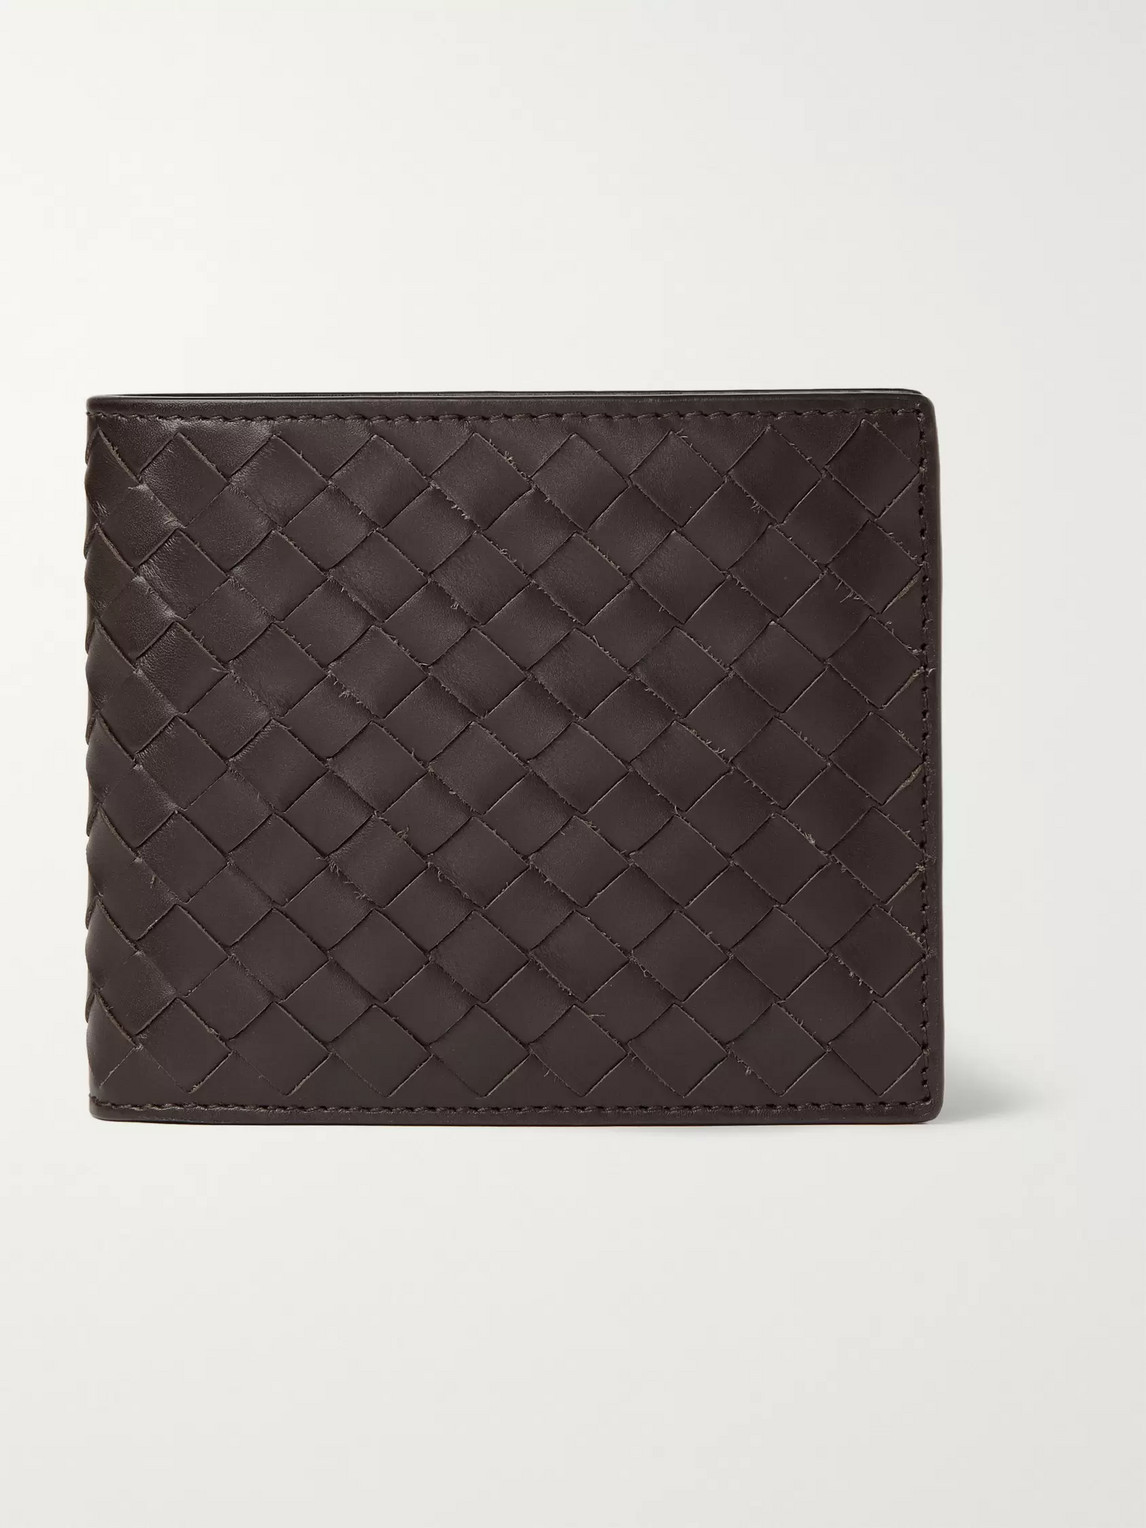 Bottega Veneta Intrecciato Leather Billfold Wallet In Brown